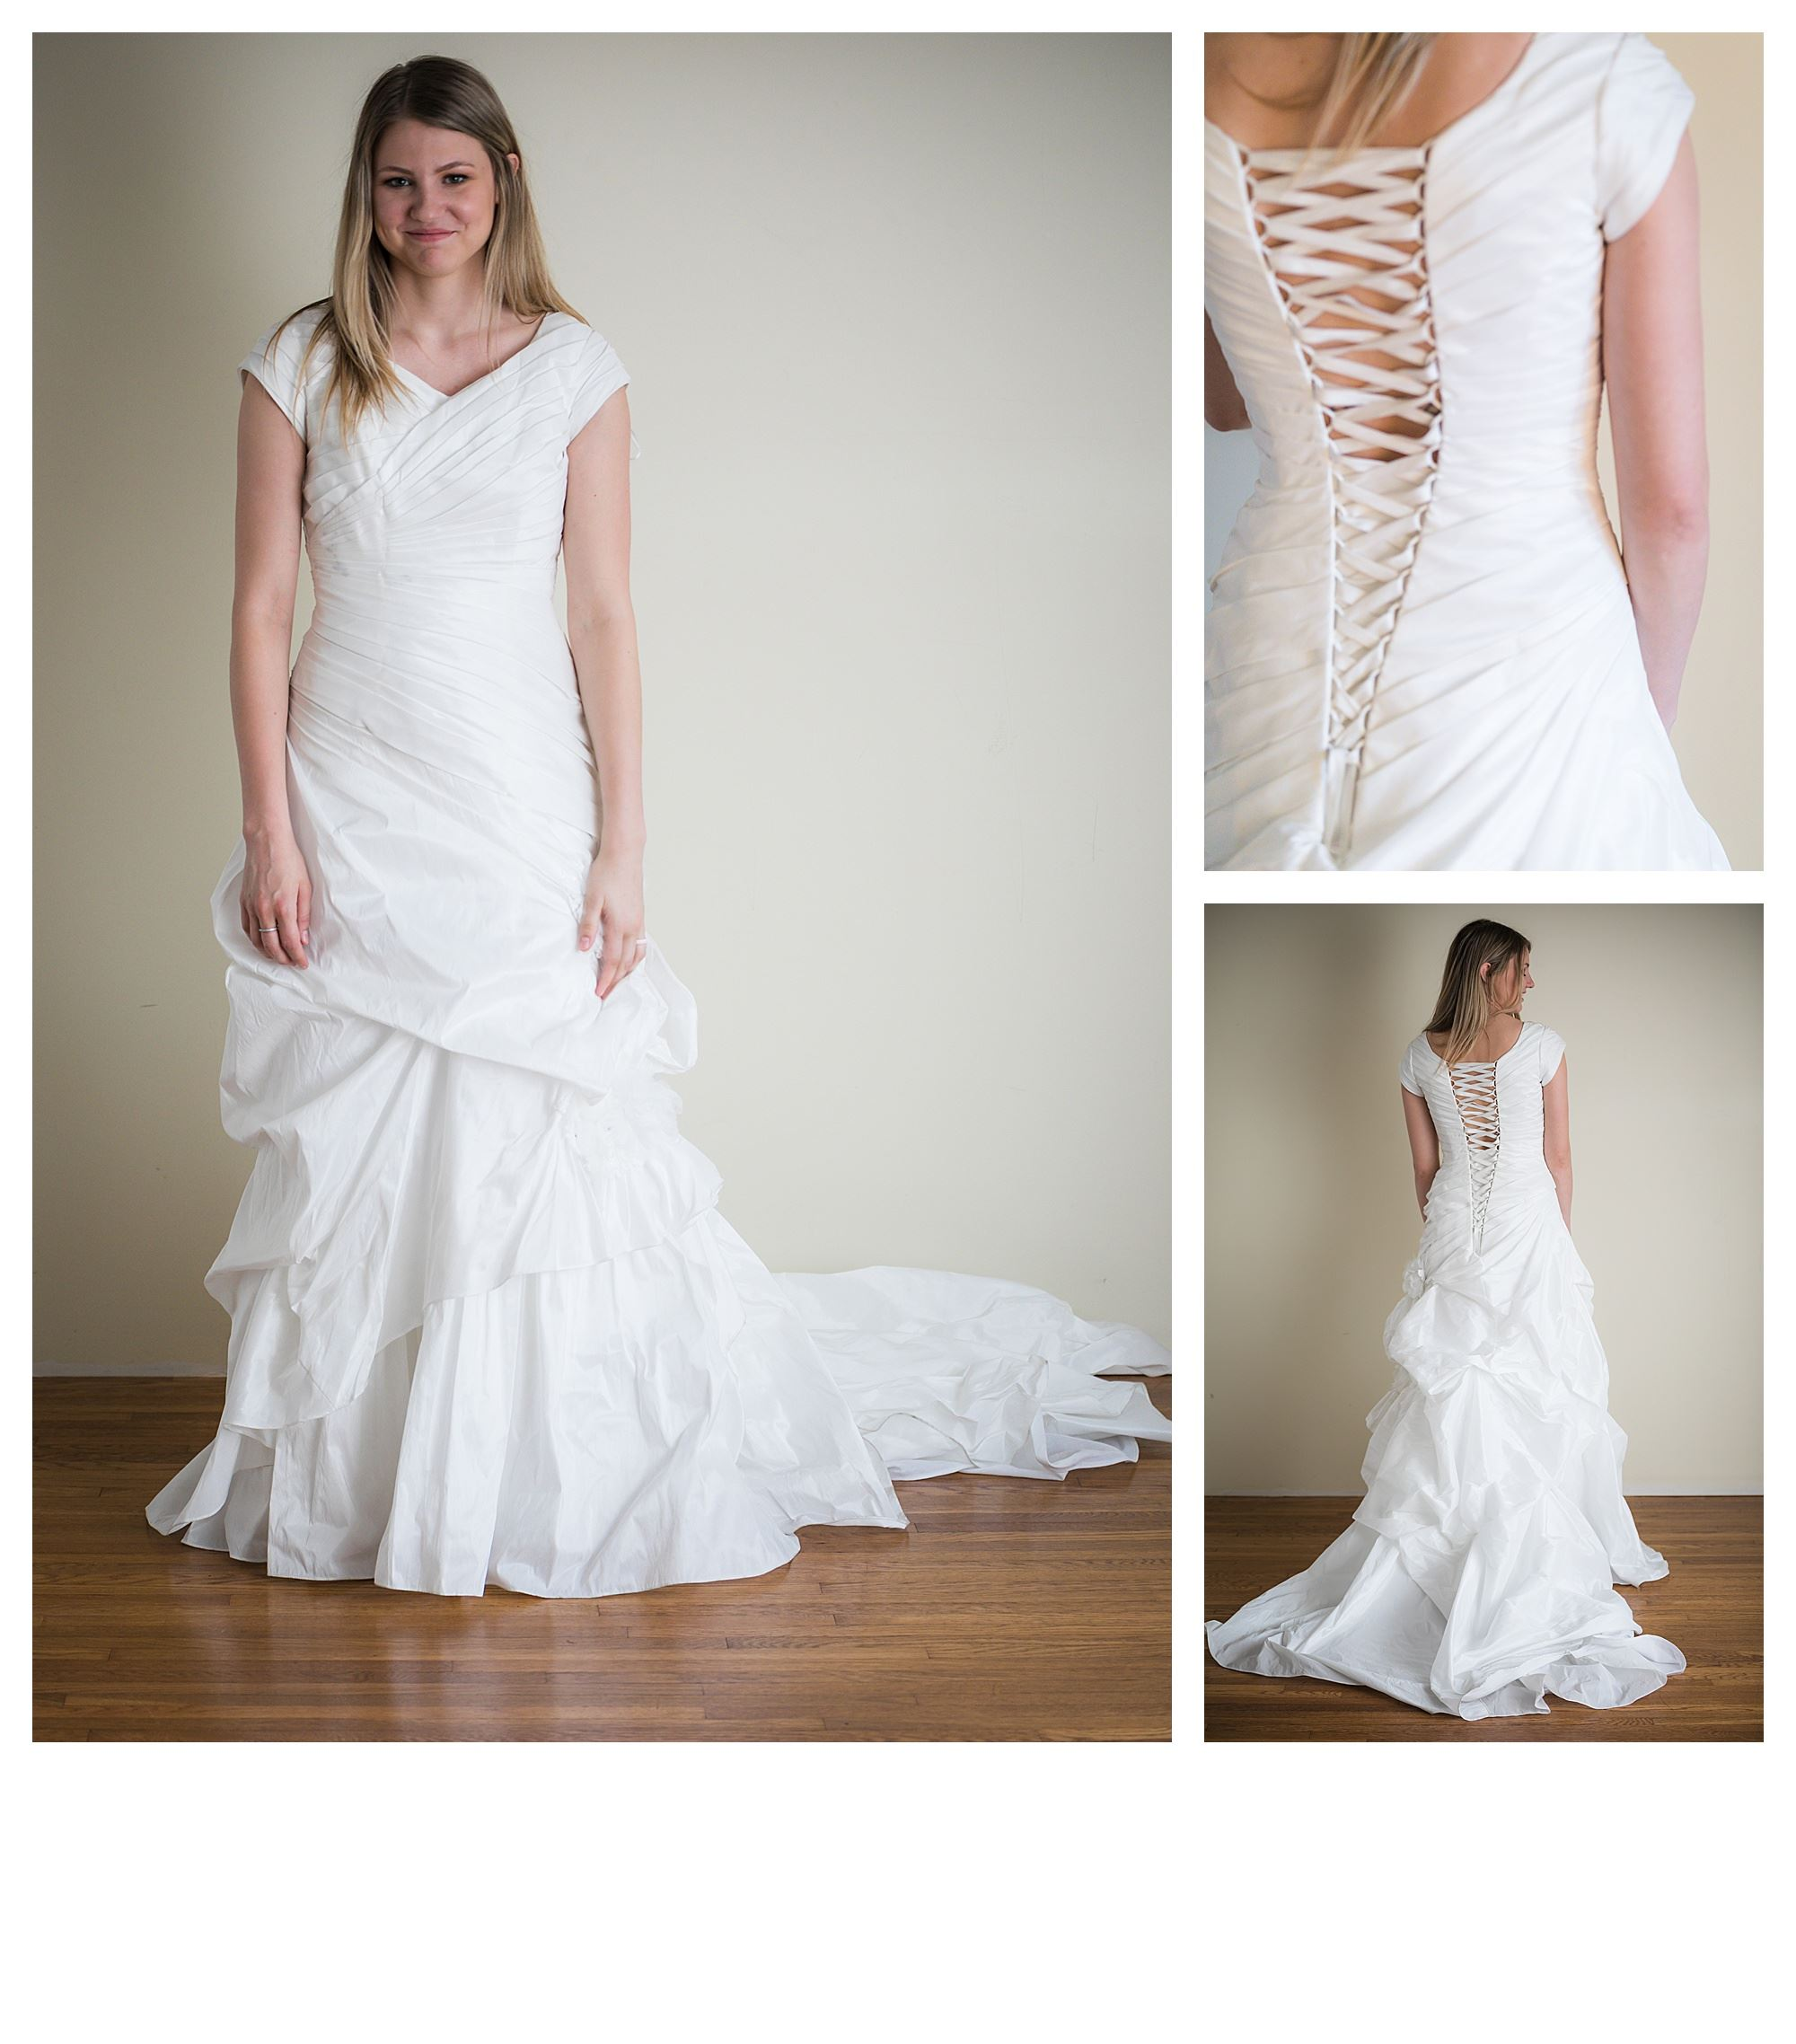 Sianna - Size 8 - Diamond White - Originally priced $999 - Sample box price $699